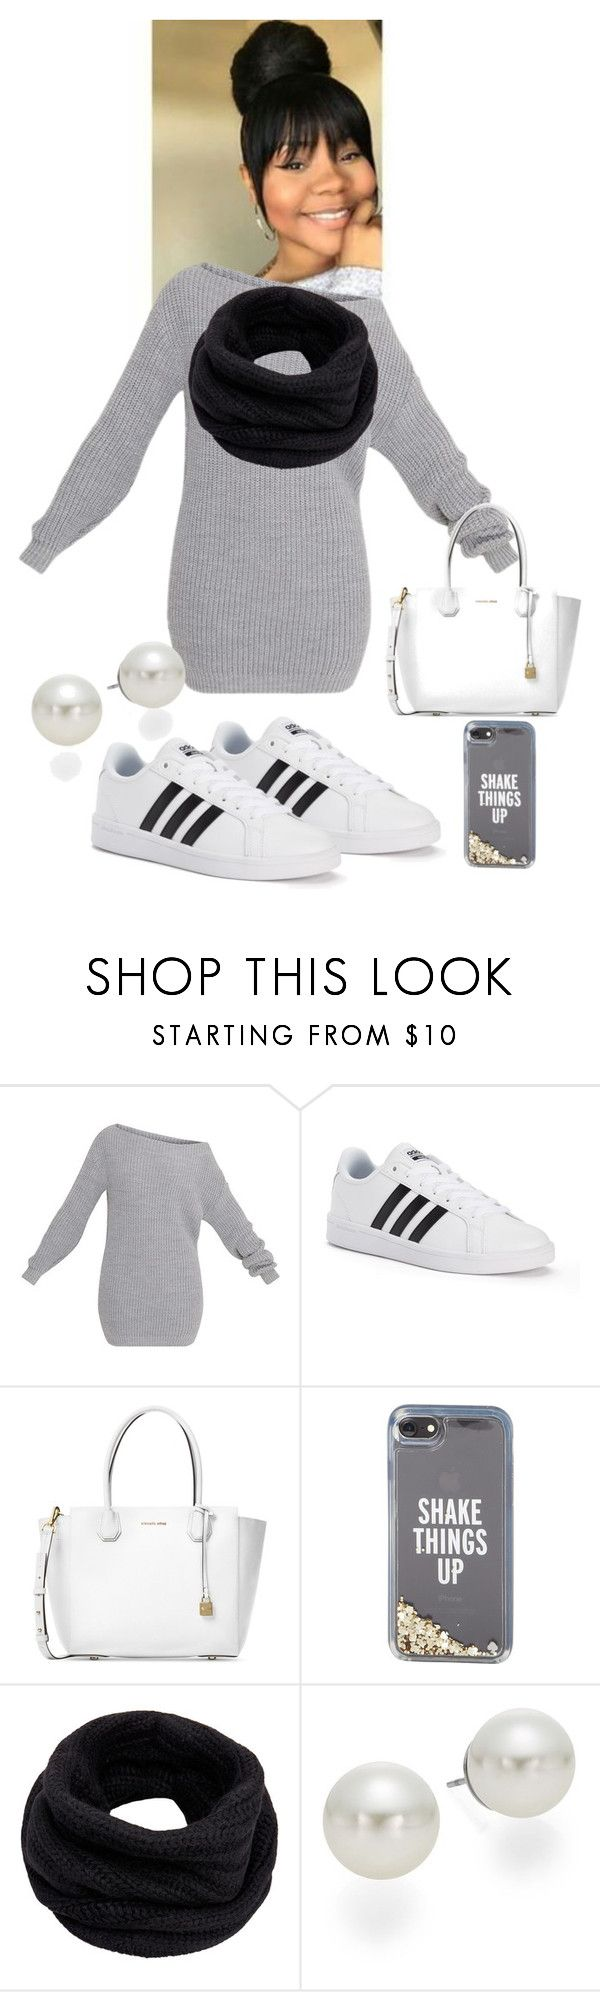 """Casual Day"" by jasiana122 on Polyvore featuring Hai, adidas, Michael Kors, Kate Spade, Helmut Lang and AK Anne Klein"